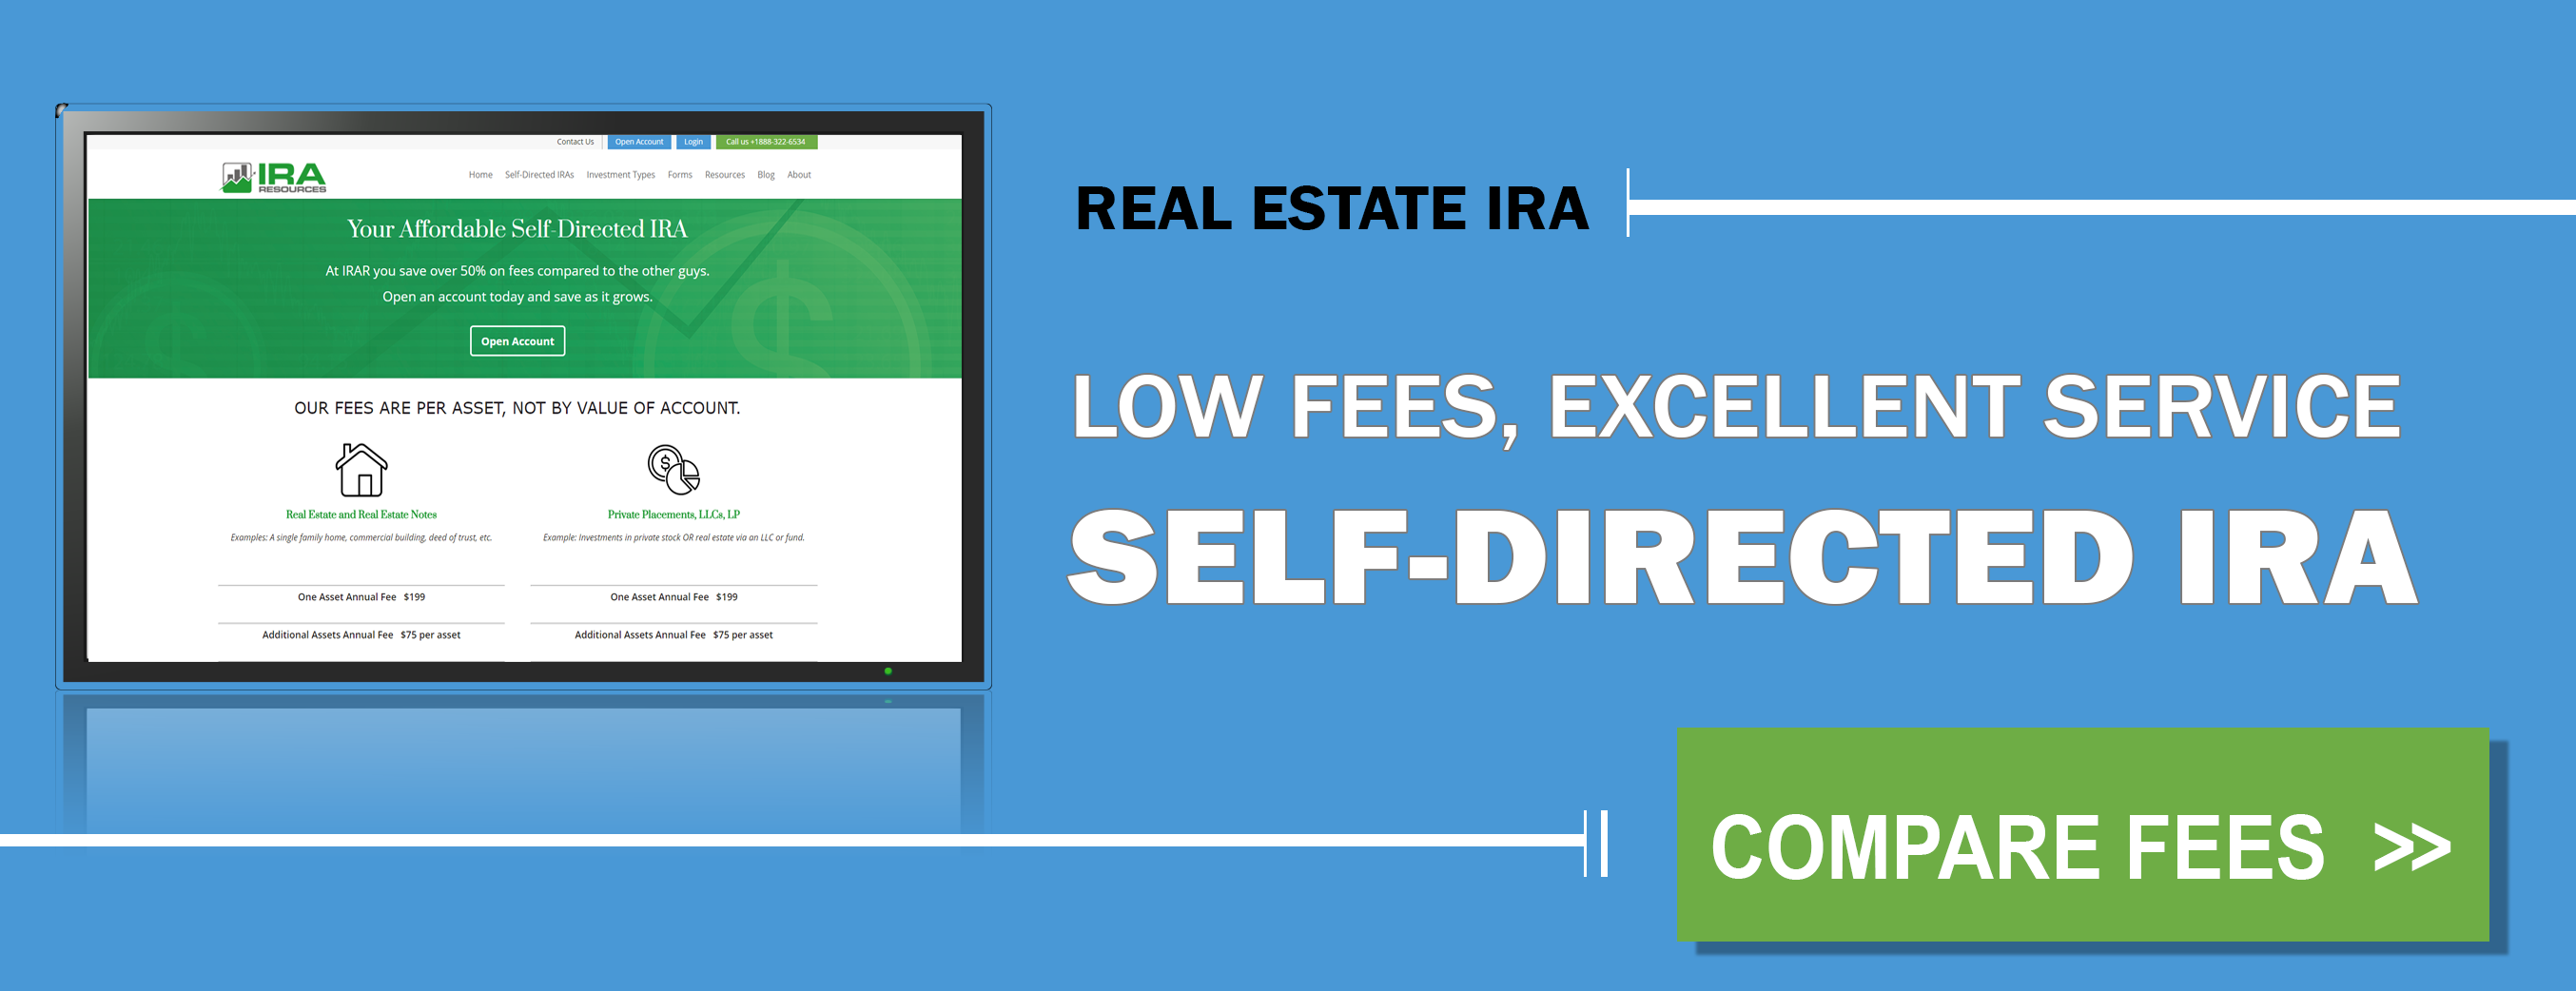 How To Invest In Real Estate With An Ira Llc